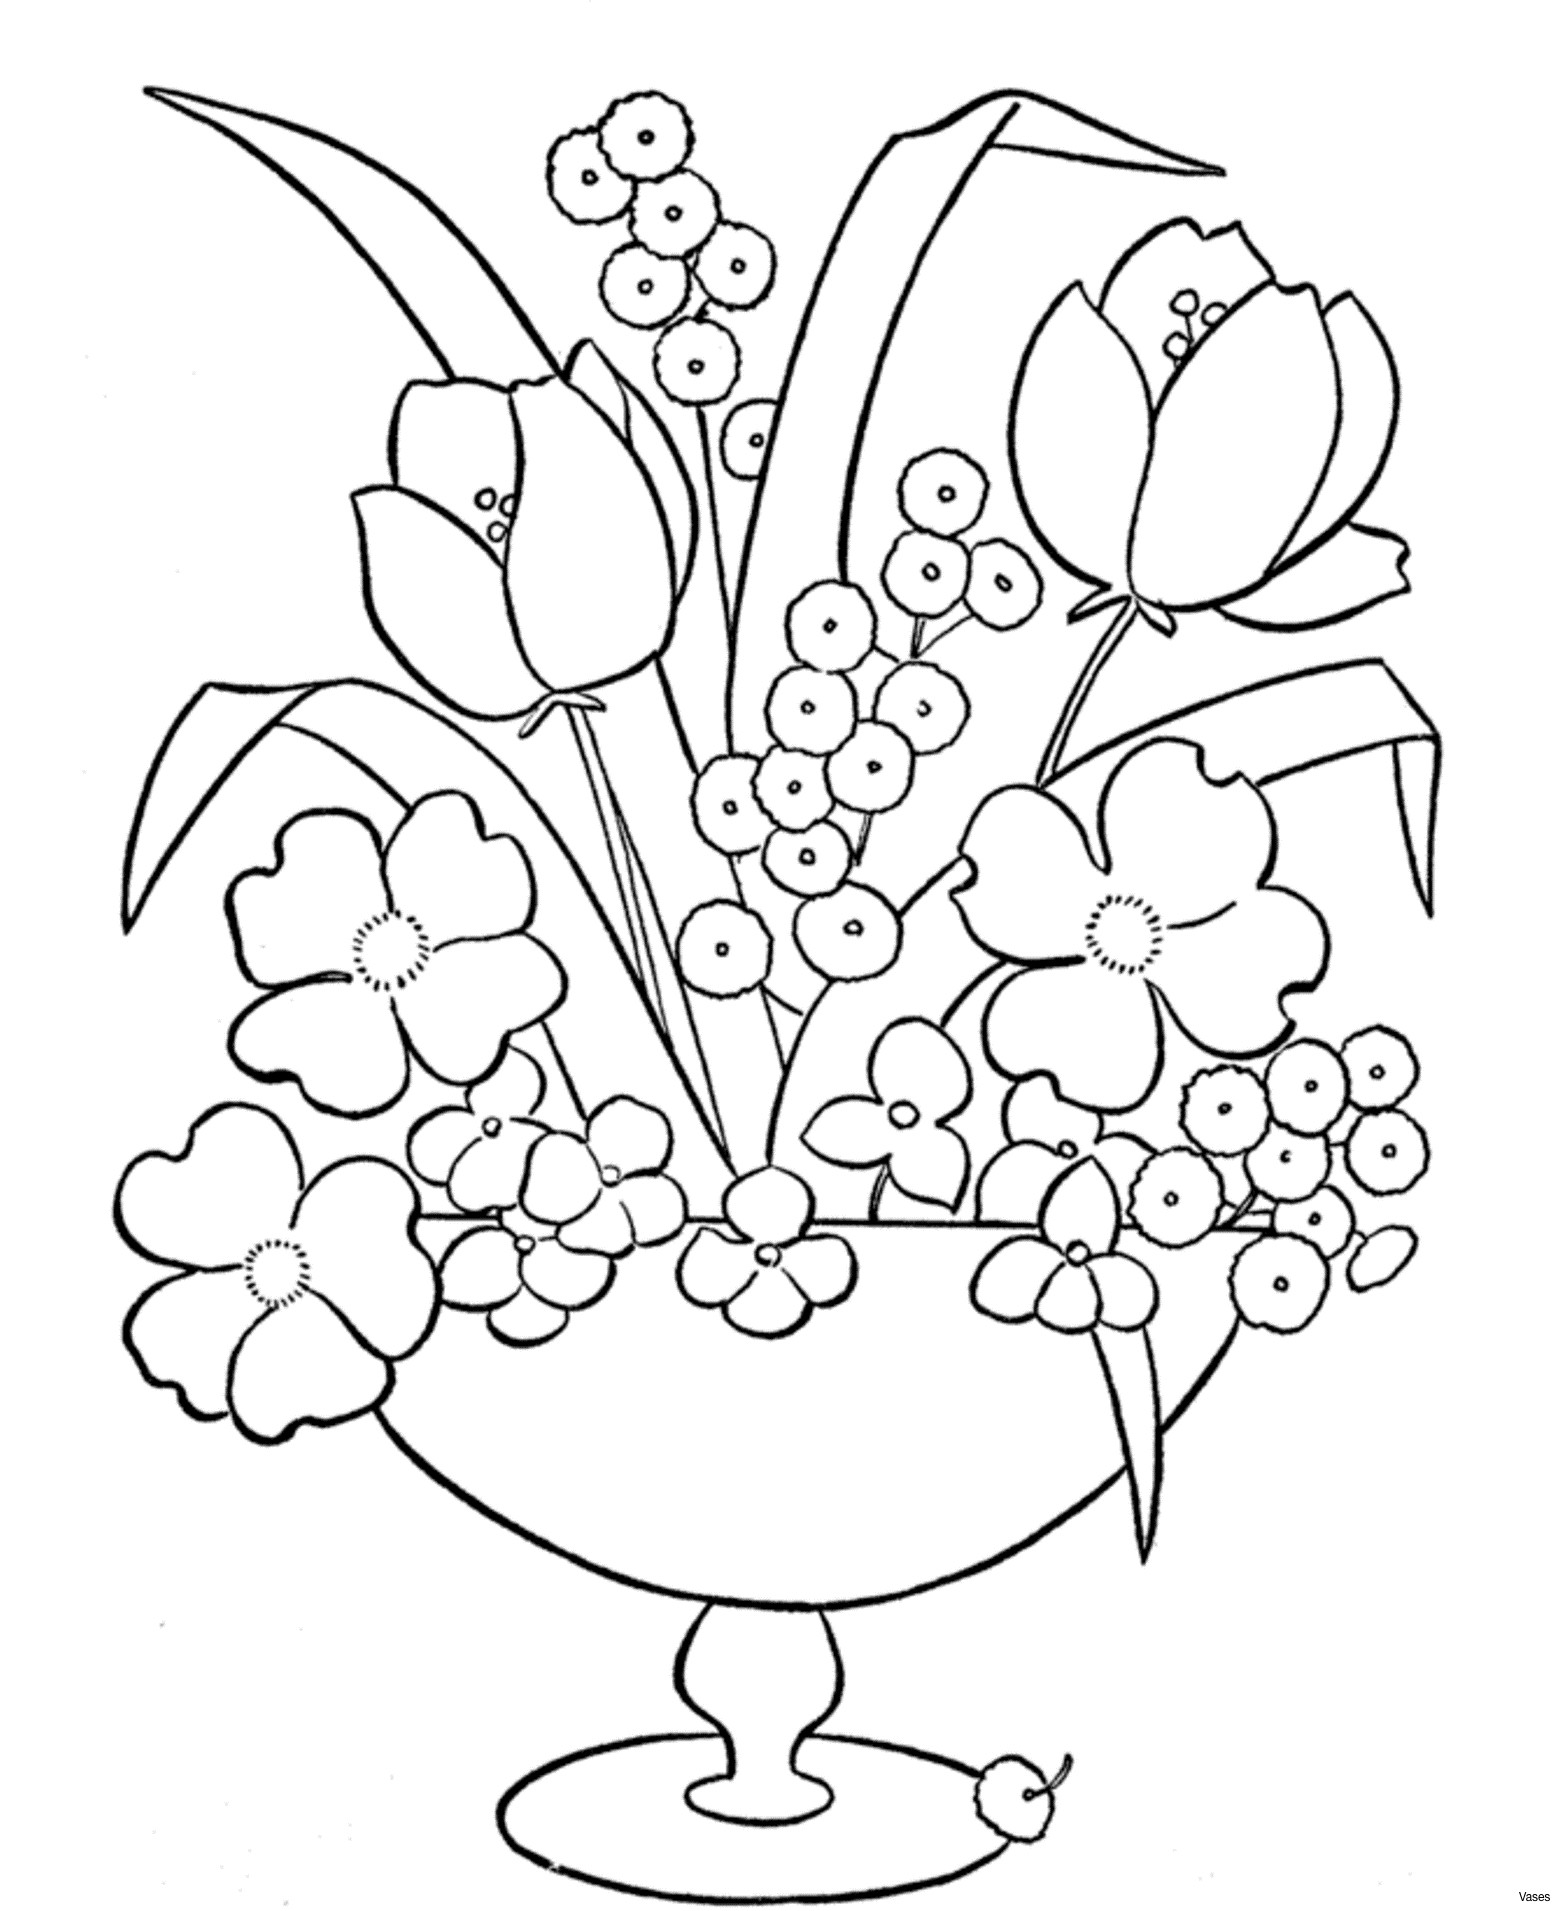 large white vase of cool vases flower vase coloring page pages flowers in a top i 0d ruva with regard to cool vases flower vase coloring page pages flowers in a top i 0d